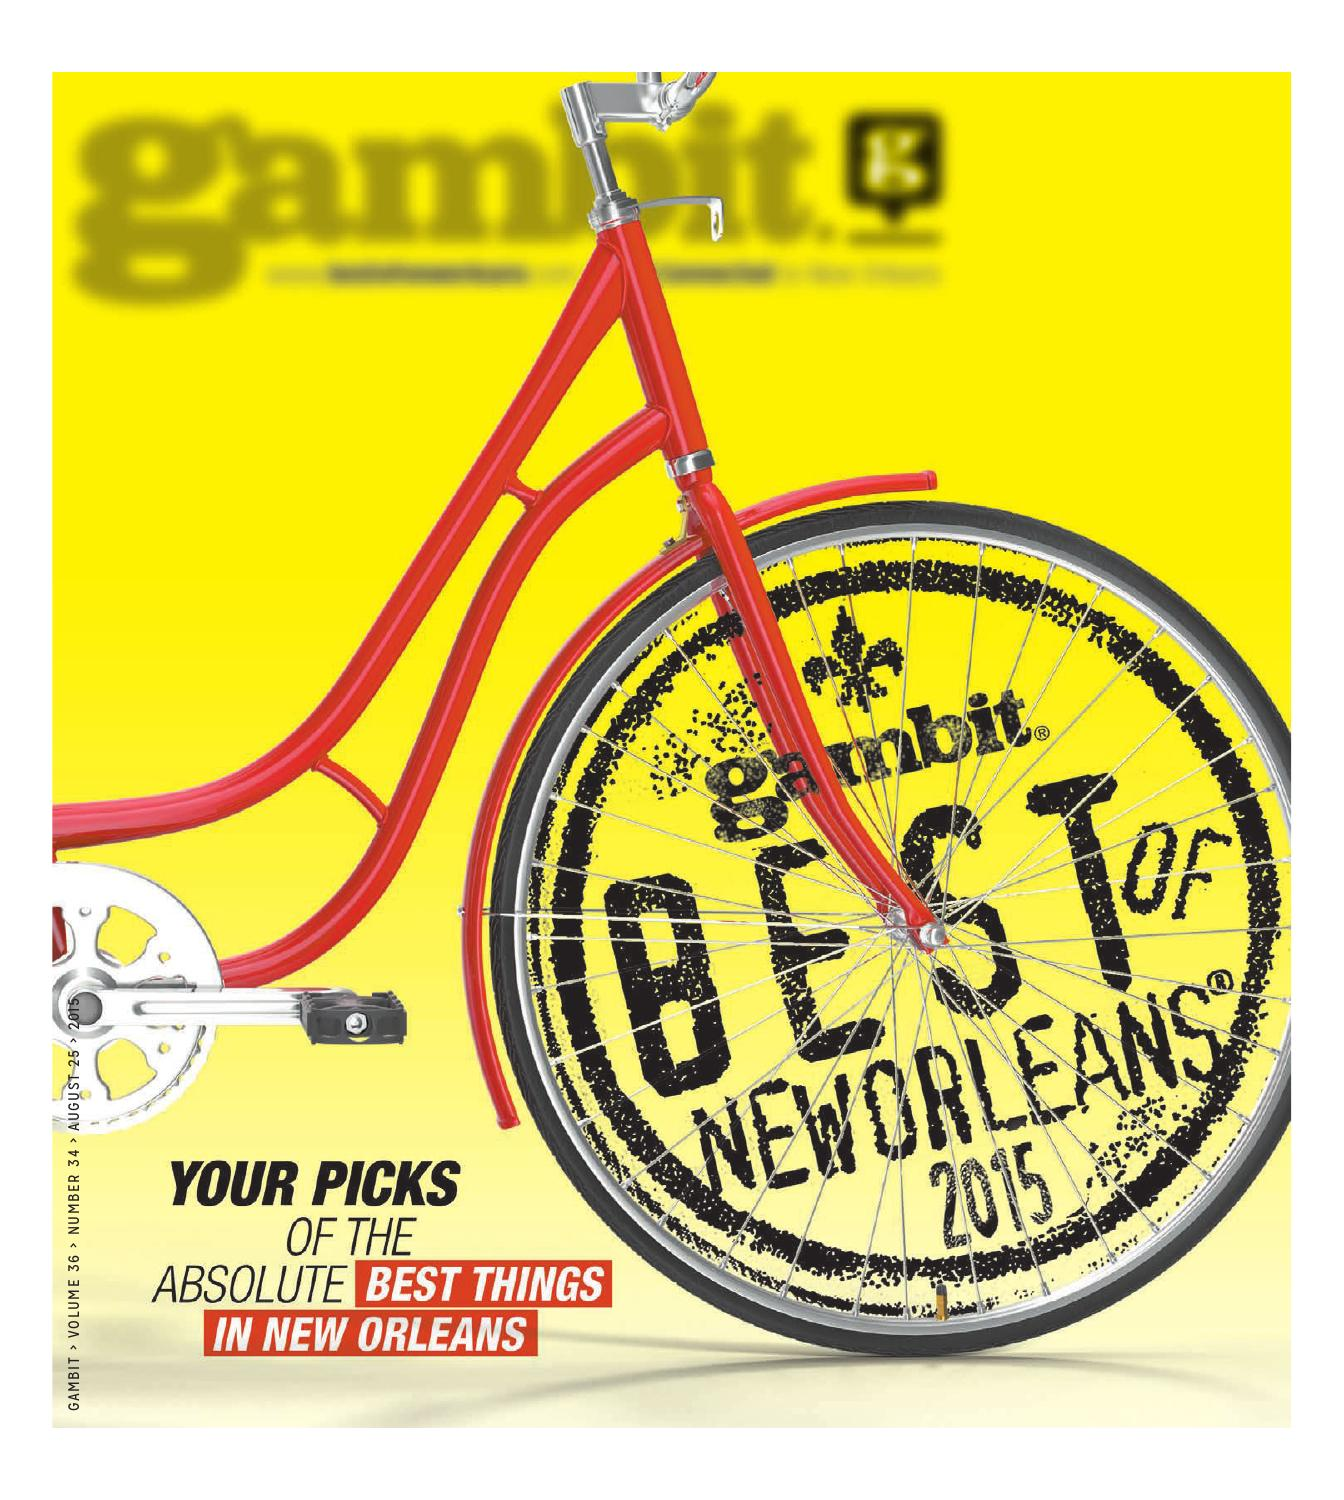 Best of New Orleans 2015 by Gambit New Orleans - issuu a00ba5a7a58